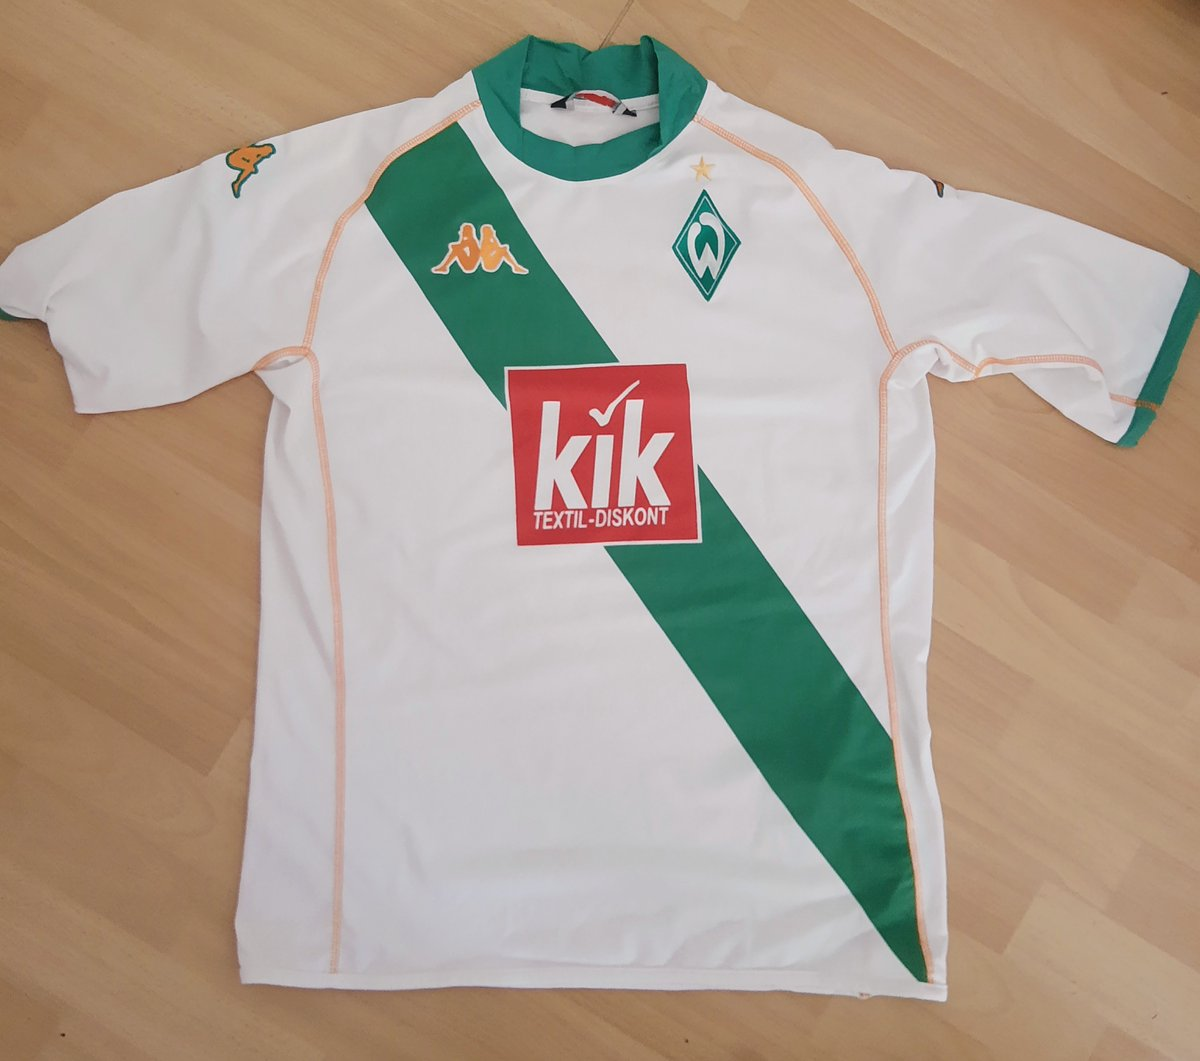 To celebrate the release of Issue 2 at the end of next week we're giving away this 2004/05 @werderbremen_en Away Jersey in XL to one lucky person.  To win the shirt: 1. RT + like this post 2. Follow   @halbvieruk https://t.co/OYn0nonDHx